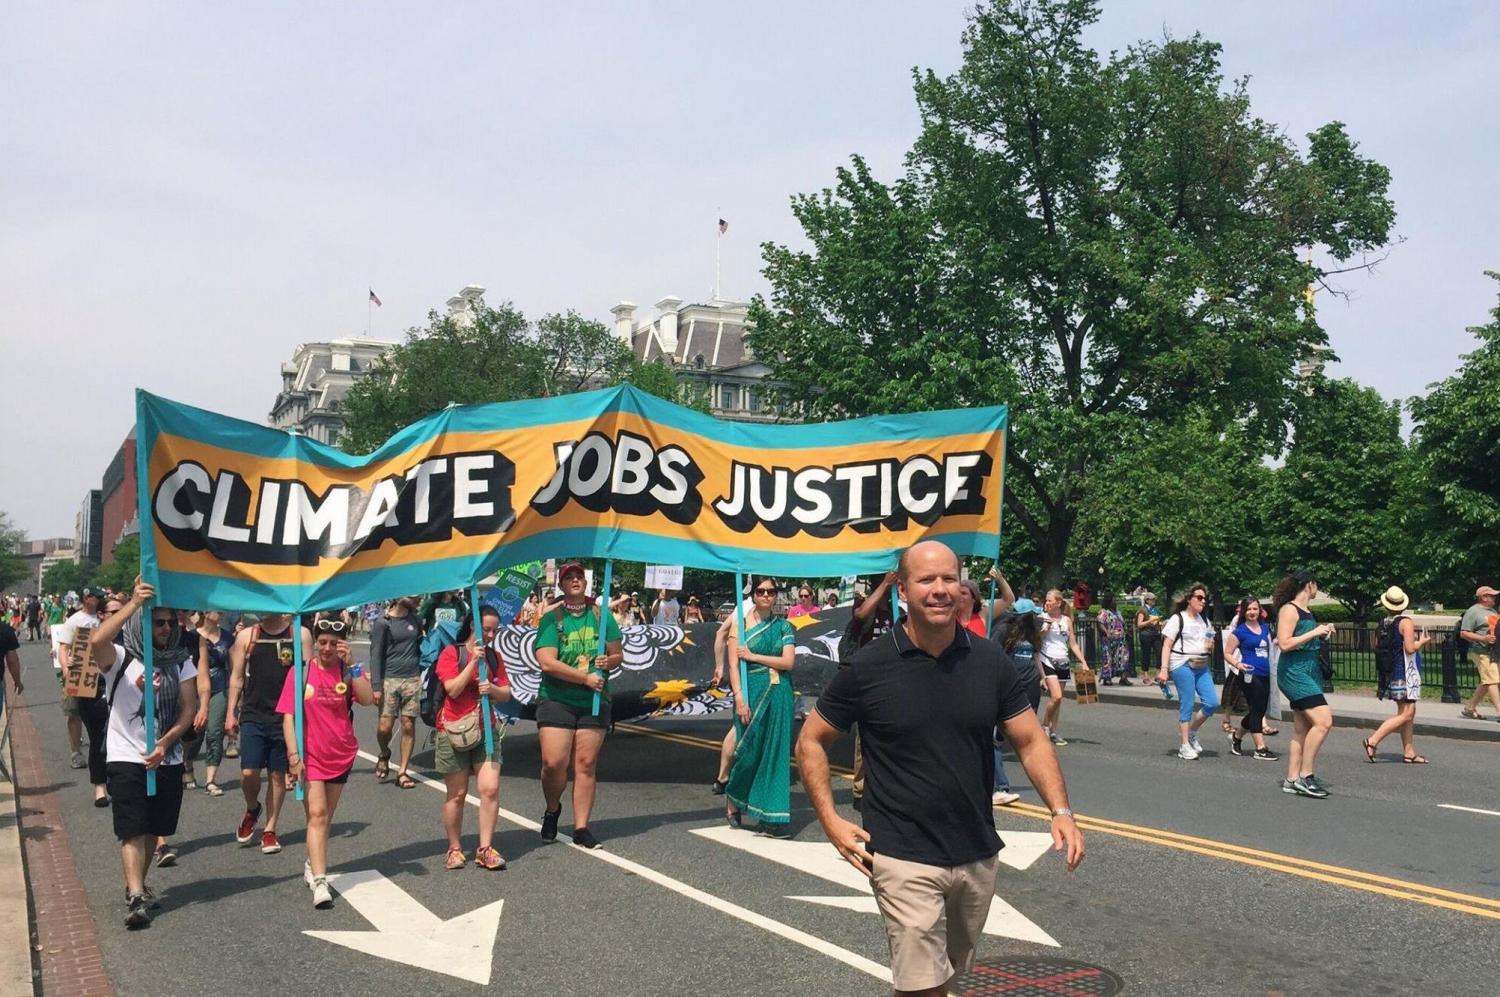 Congressman John Delaney marches with supporters at the Climate March. Delaney became the first official candidate of the 2020 presidential election on July 28. Photo courtesy Delaney campaign.